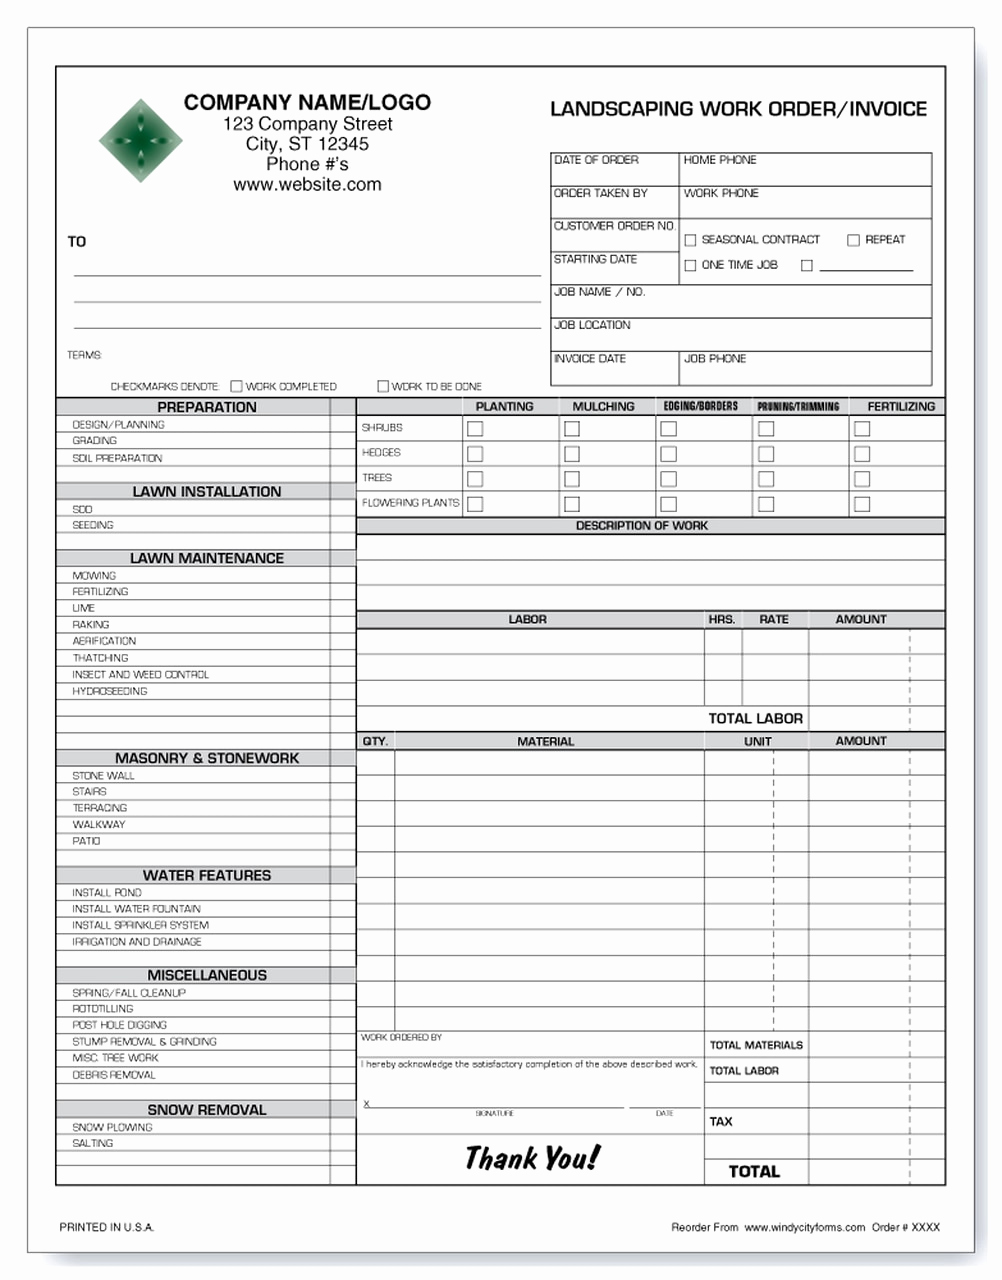 Landscaping Invoice Template Free Lovely Landscaping Work order Invoice Version 2 Windy City forms